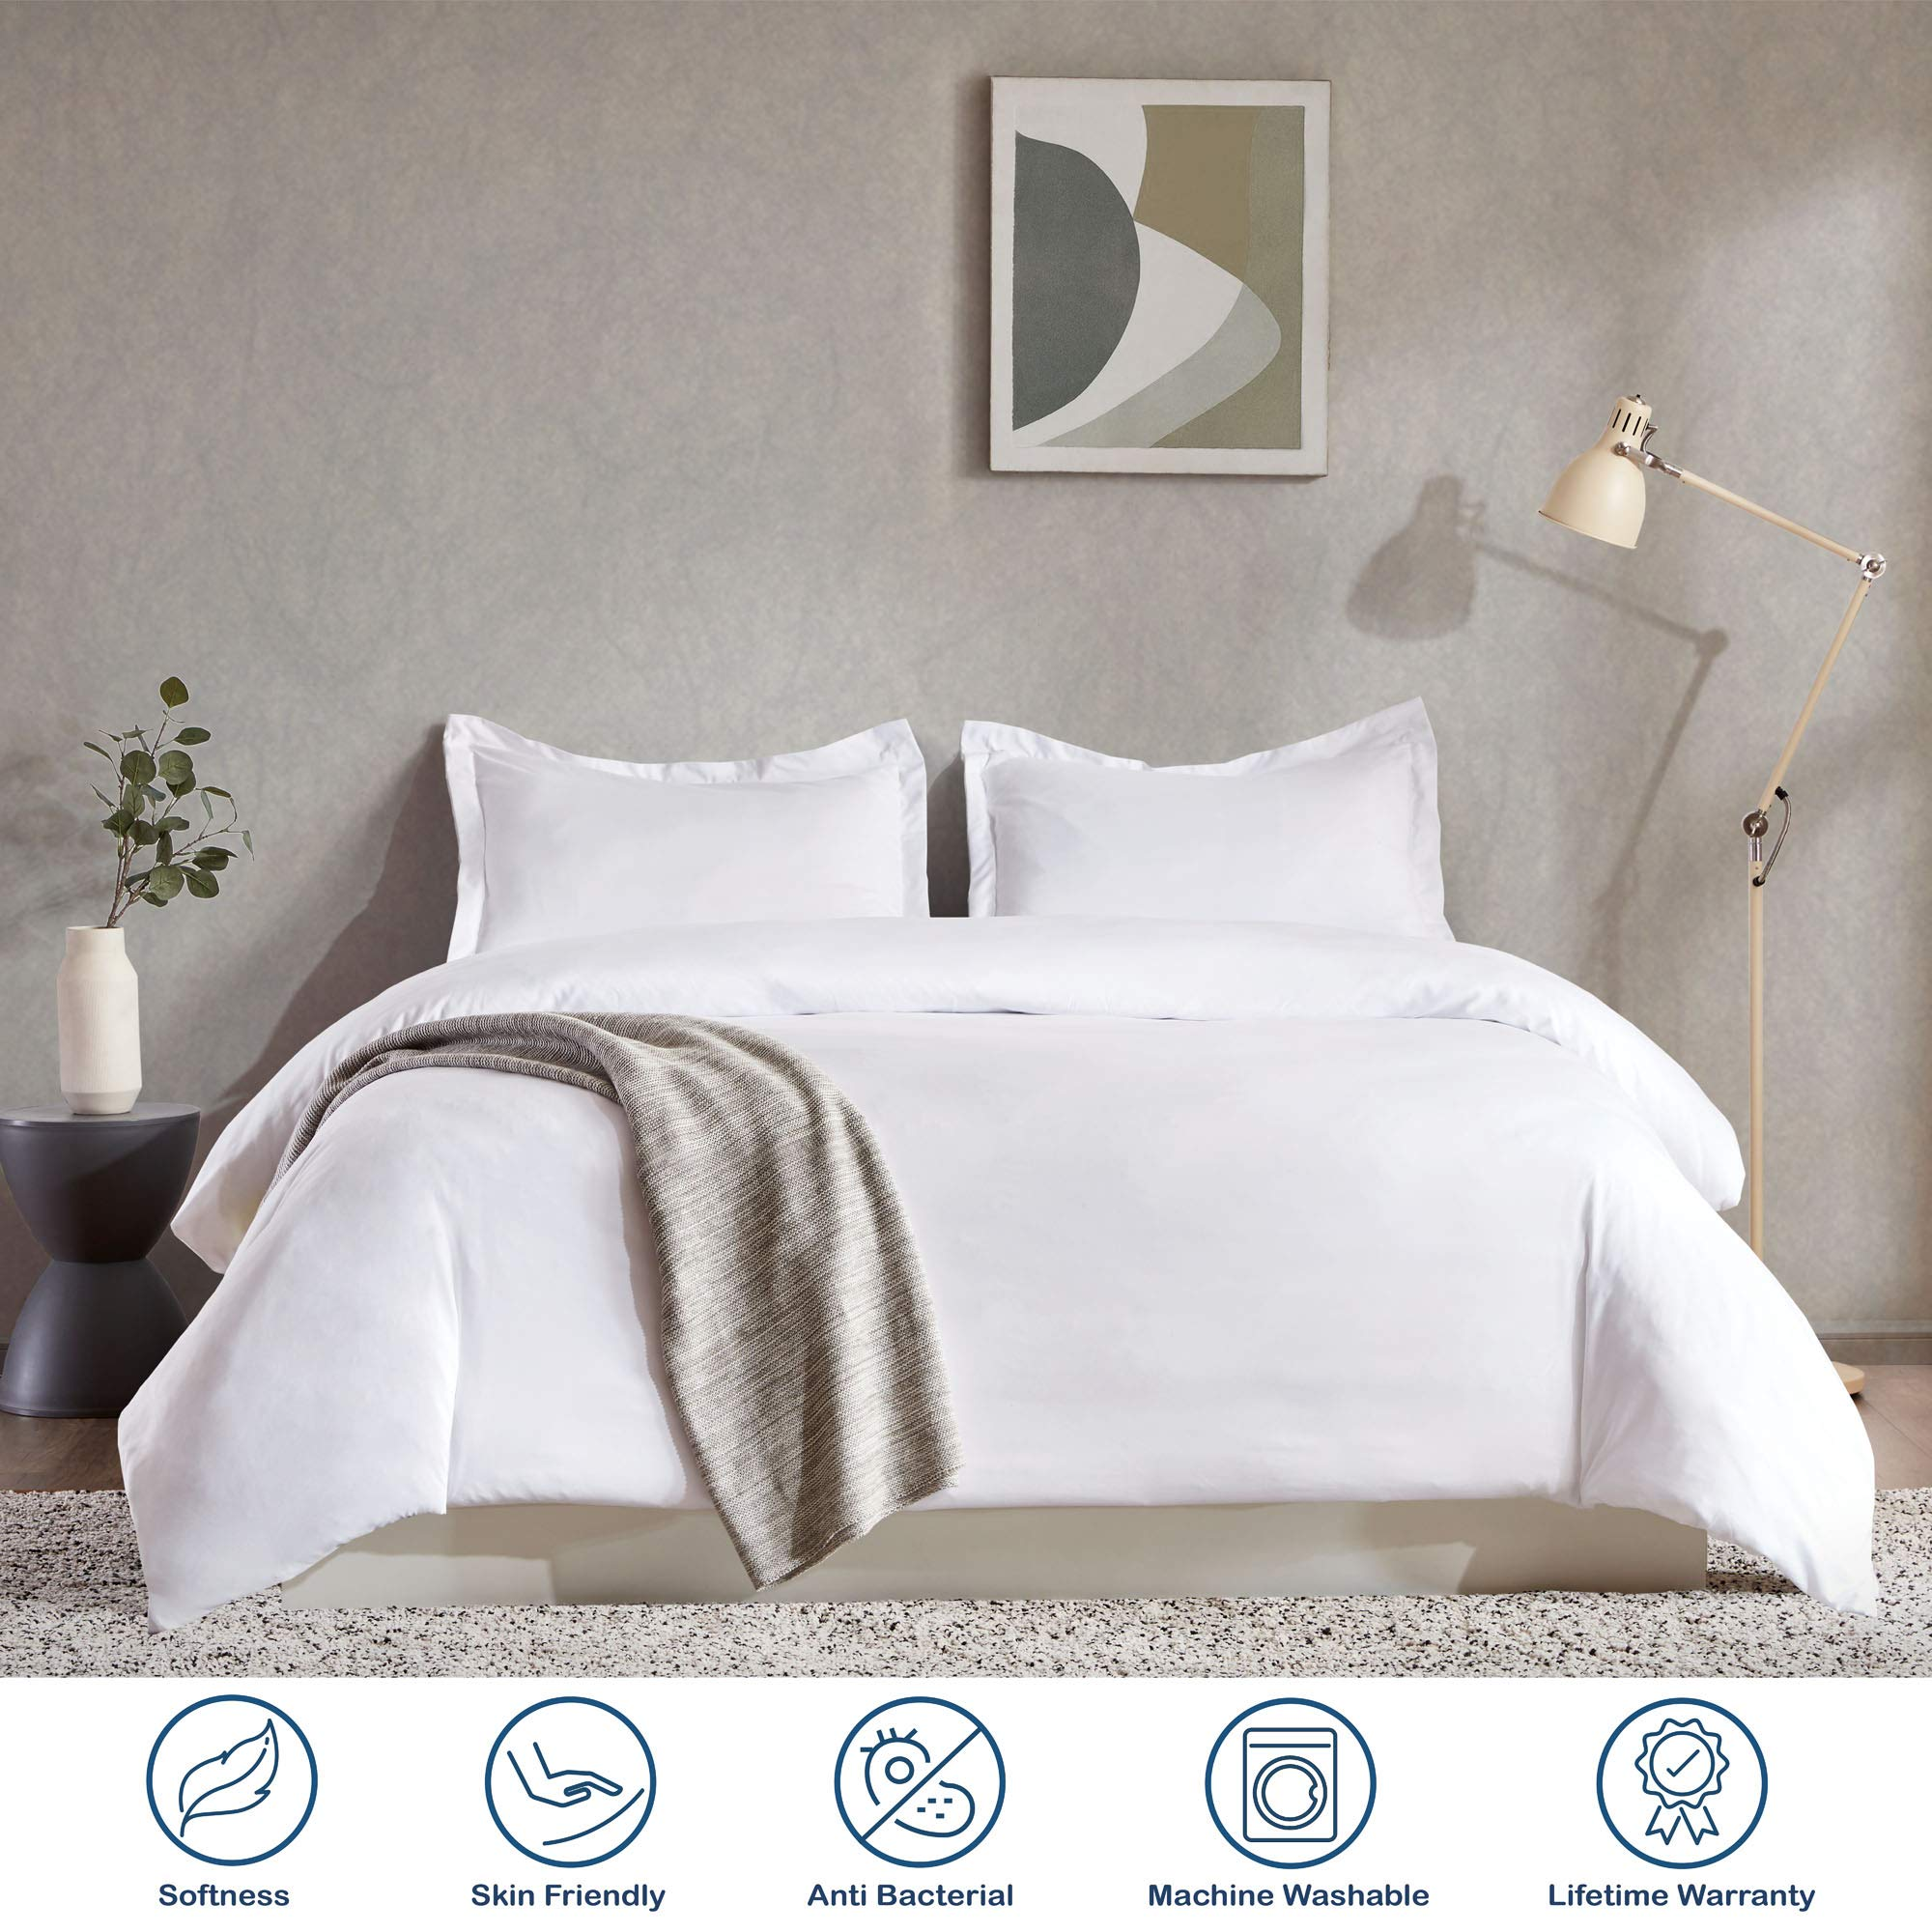 Sleep Zone Bedding Duvet Cover Cooling 120gsm Soft Zipper Closure Corner Ties 3 PC, White,King